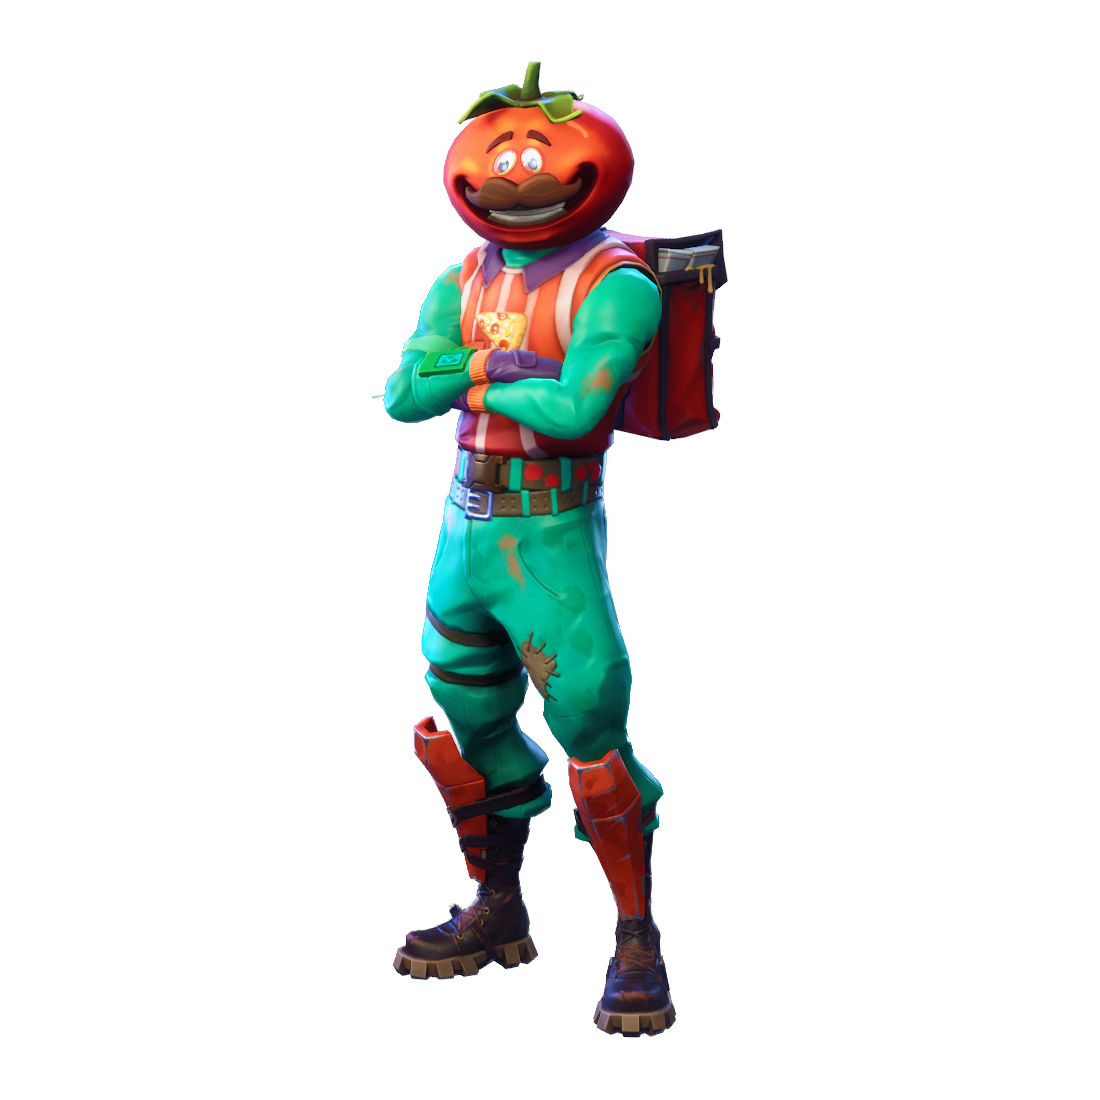 May The Fourth Be With You Transparent: Fortnite Tomatohead PNG Image - PurePNG